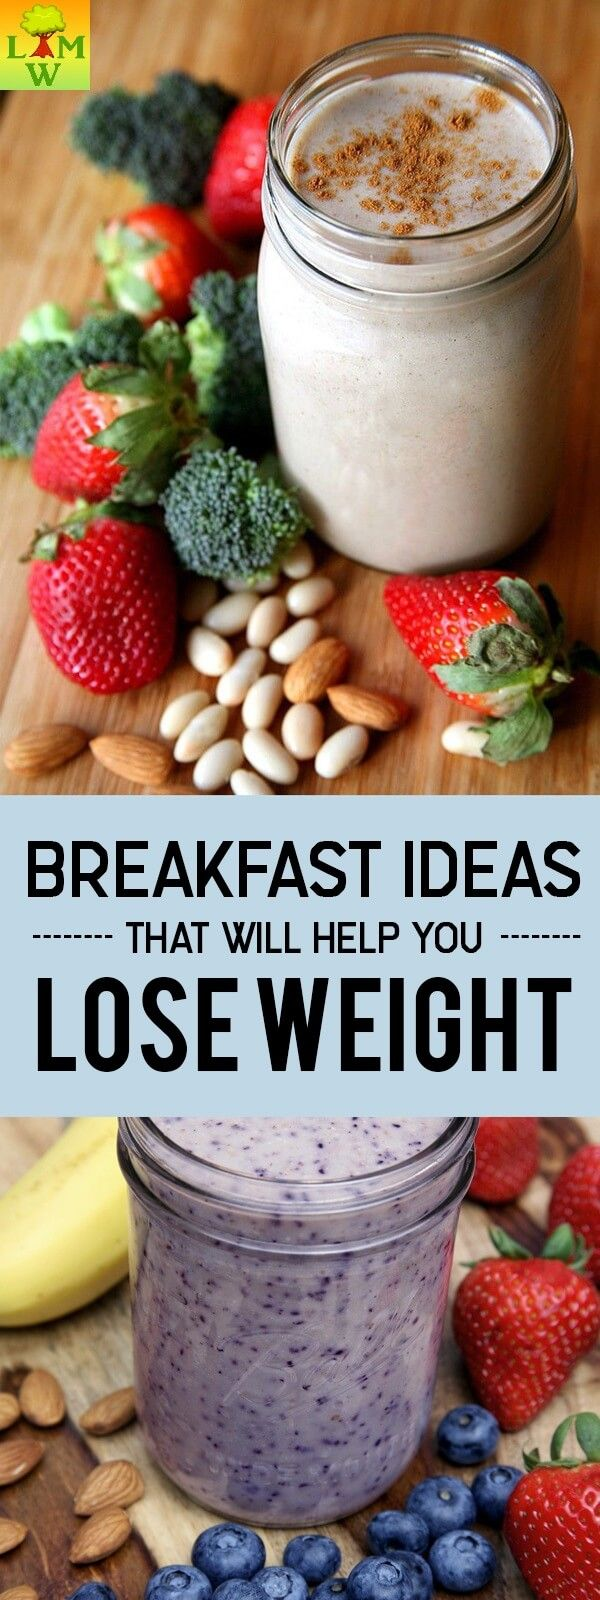 If you want to lose weight quickly and most importantly in a healthy way, you should definitely have breakfast as it is the most important meal of the day.